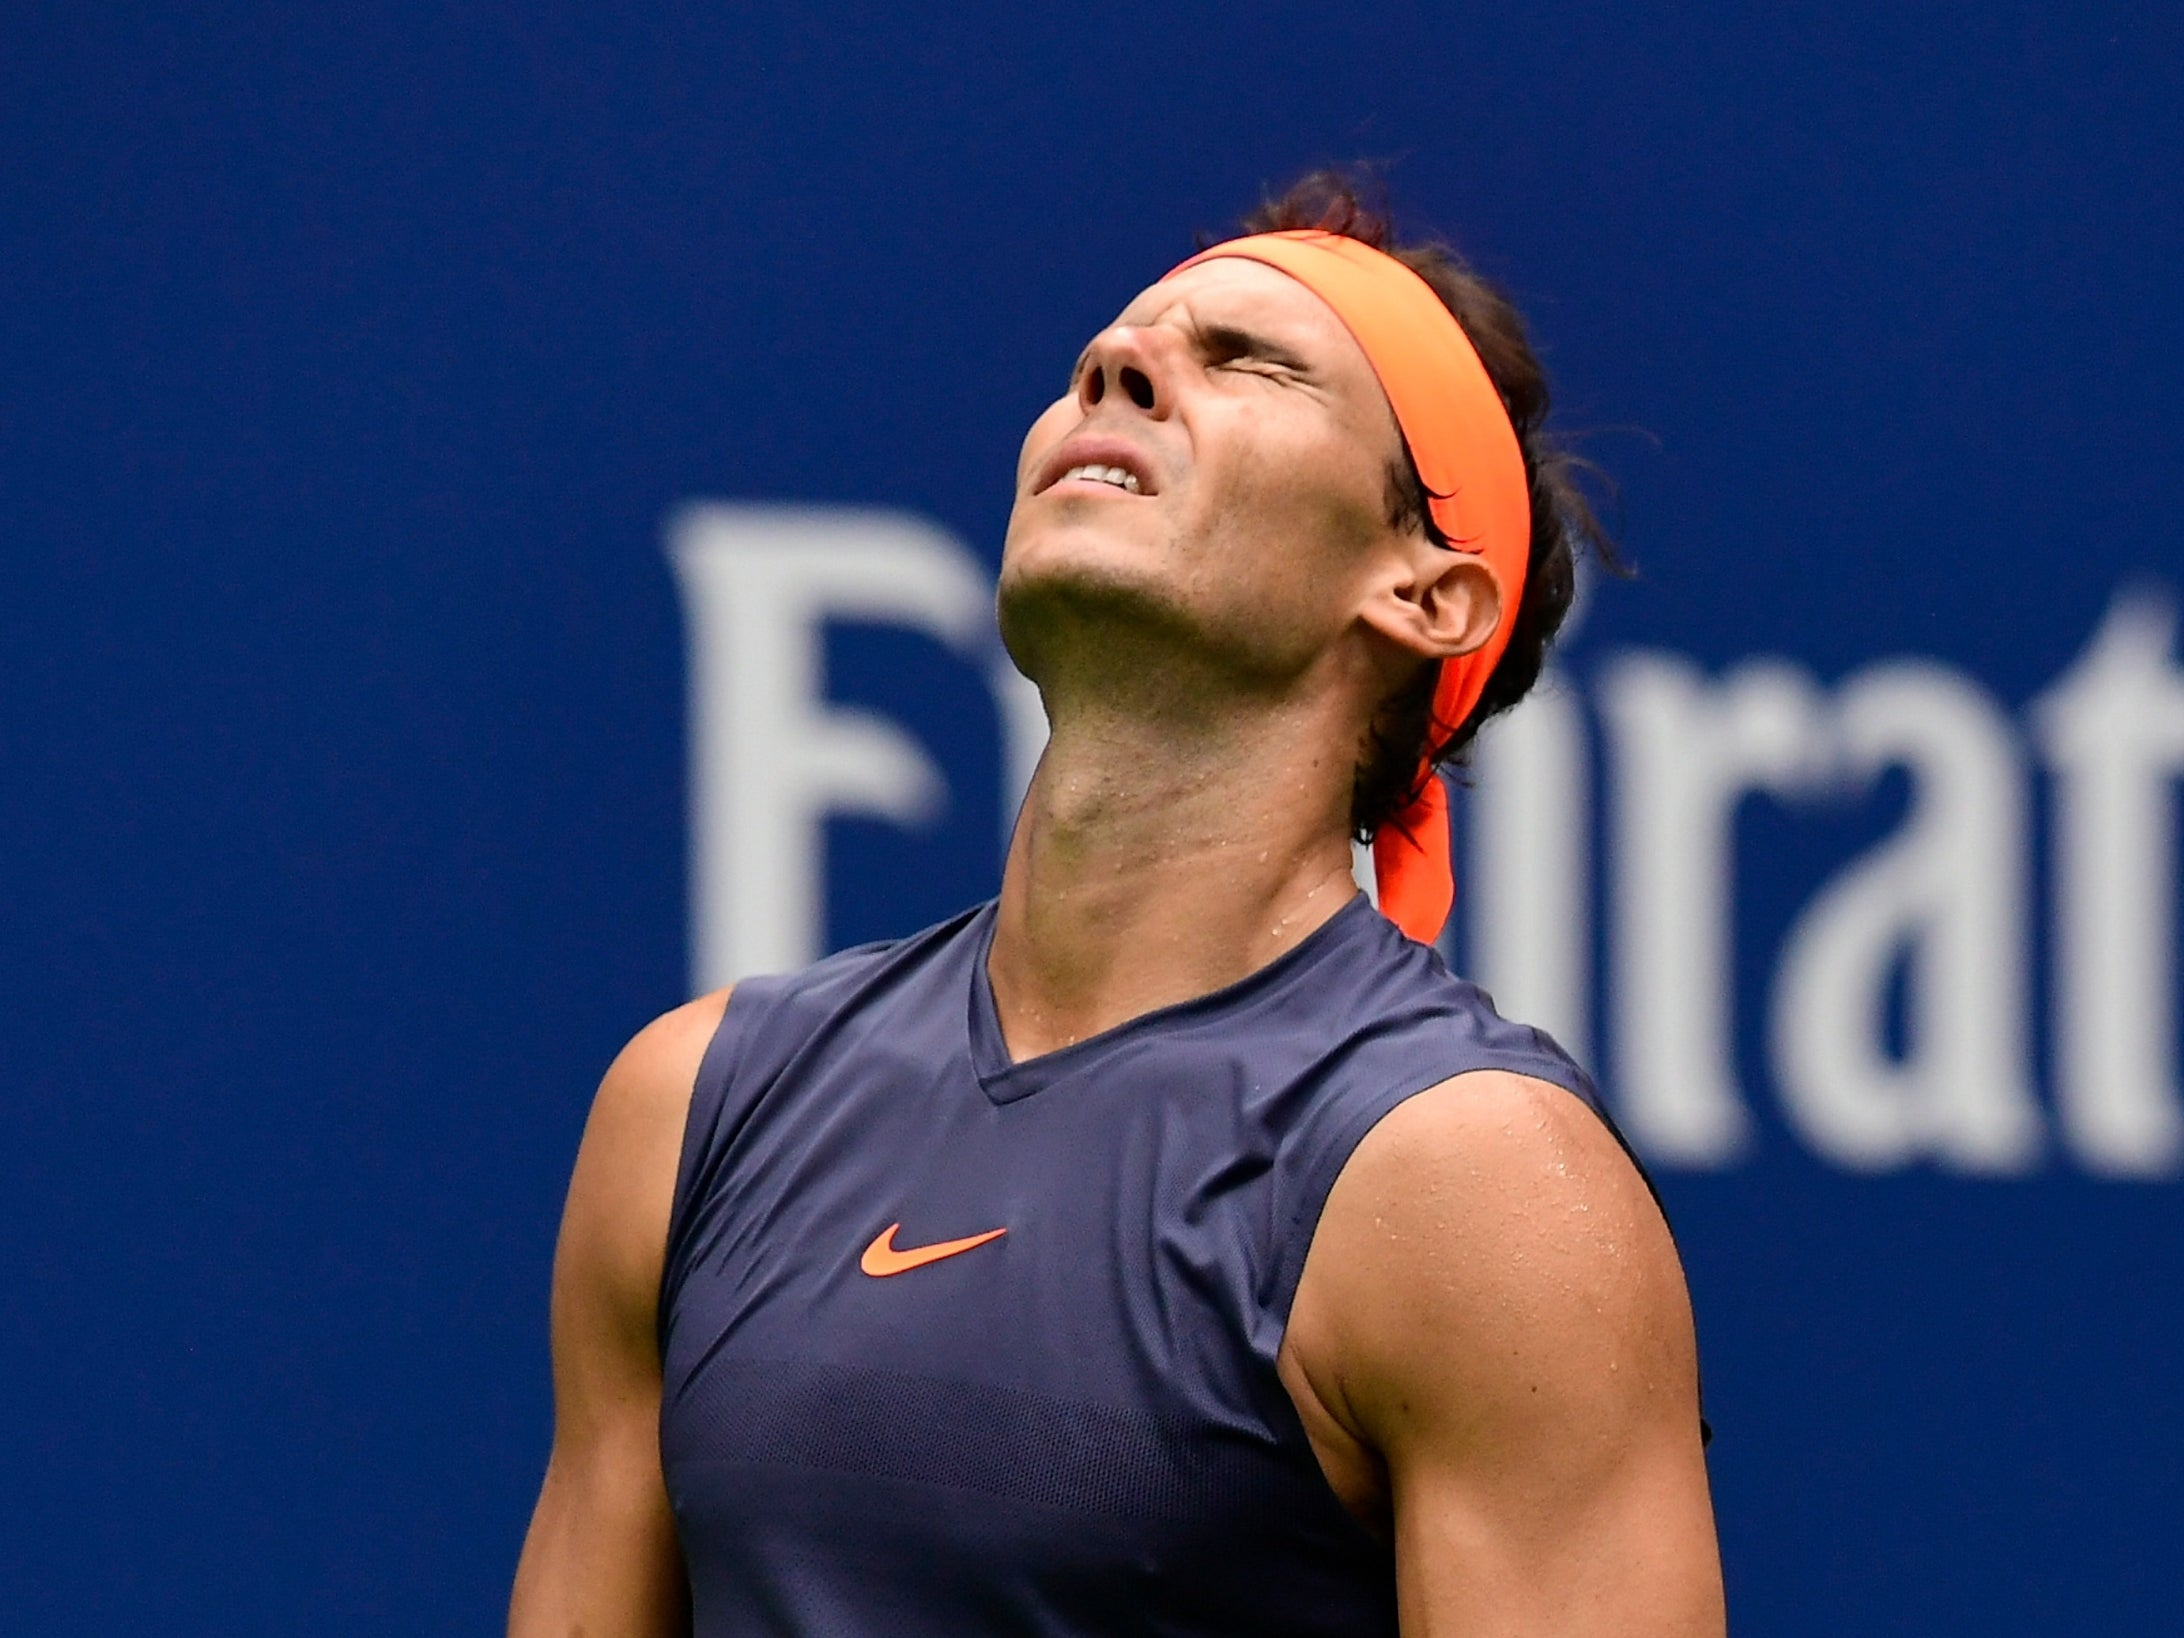 Rafael Nadal Image: Rafael Nadal Forced To Retire From US Open Semi-final With